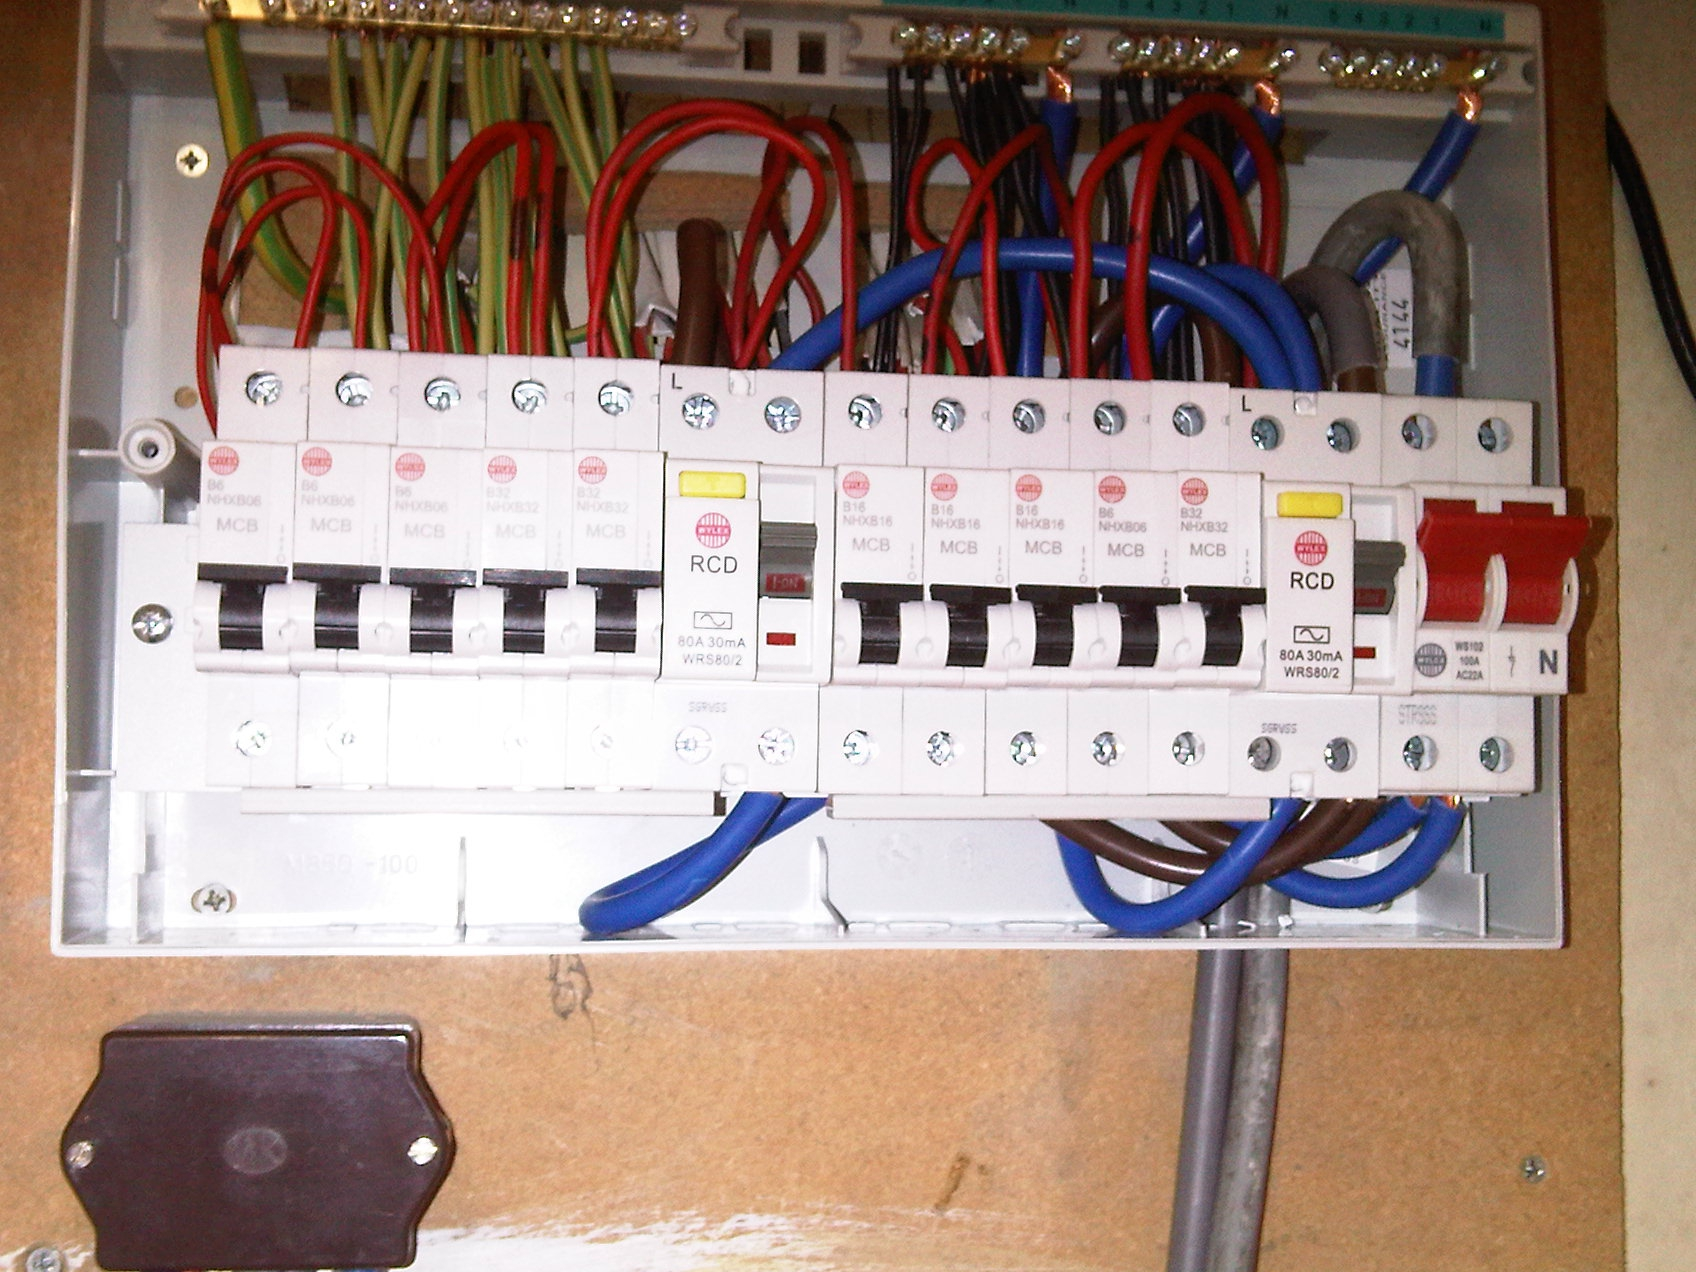 Fuse Box Connection : Just want to confim